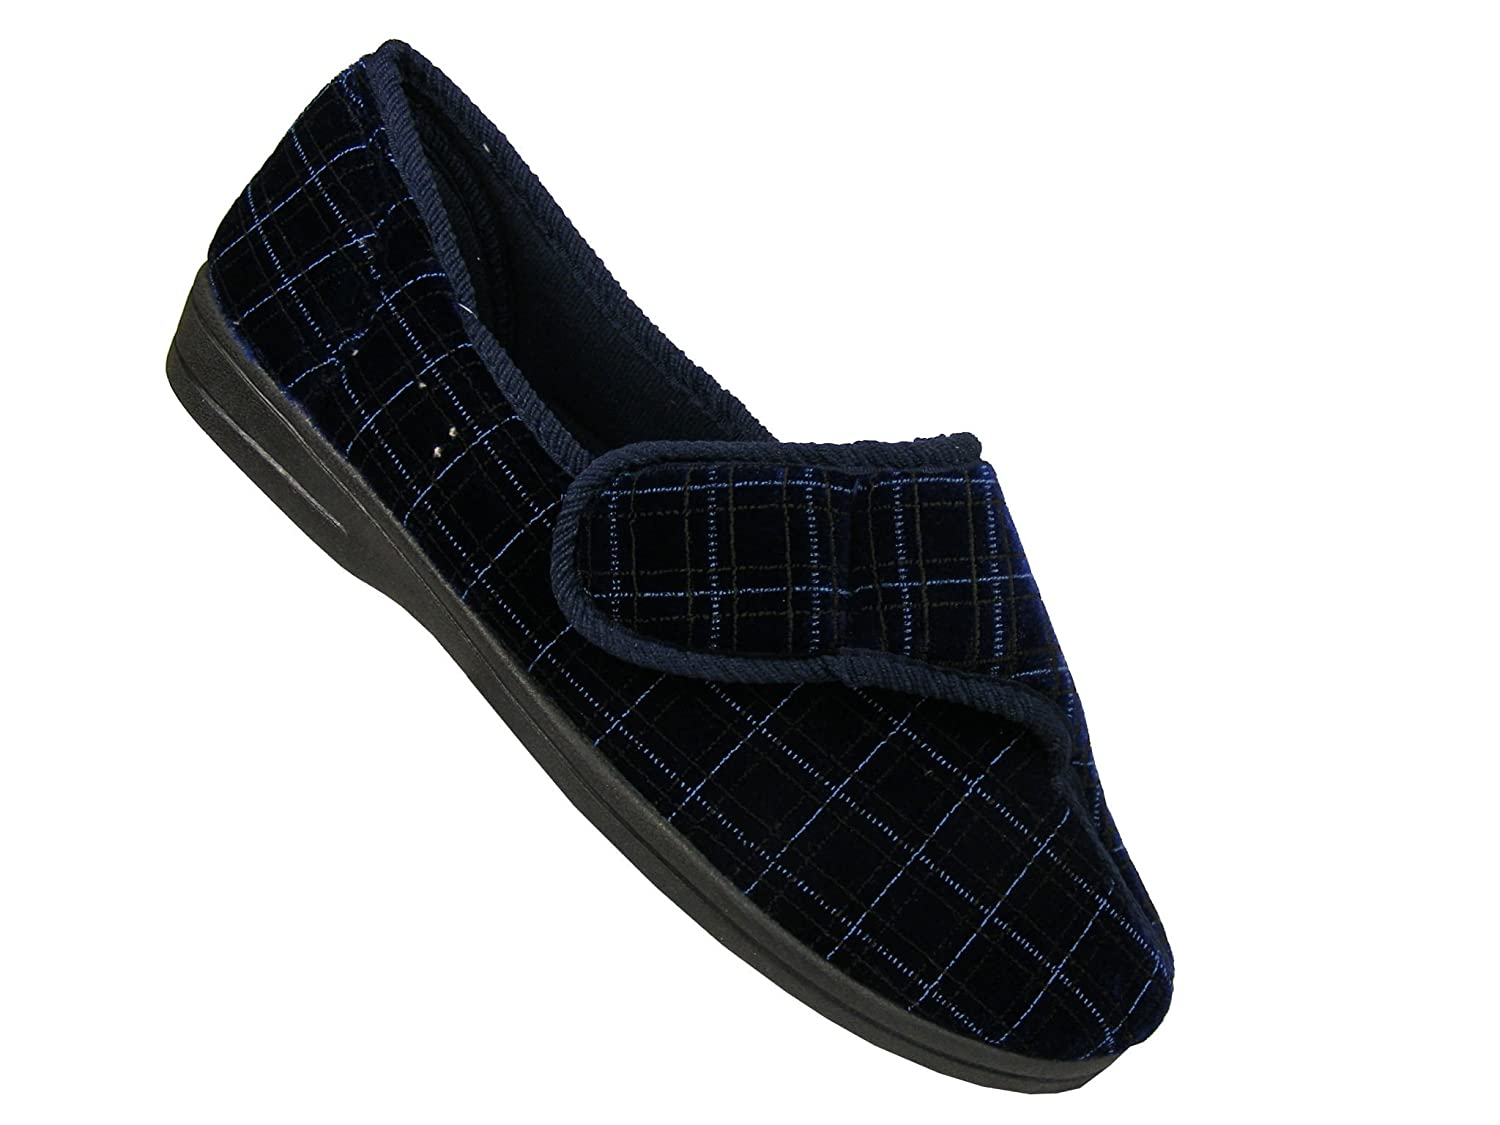 MENS NAVY WIDE FIT ORTHOPEDIC WASHABLE STRAP SLIPPERS SHOES,SIZES 7-12